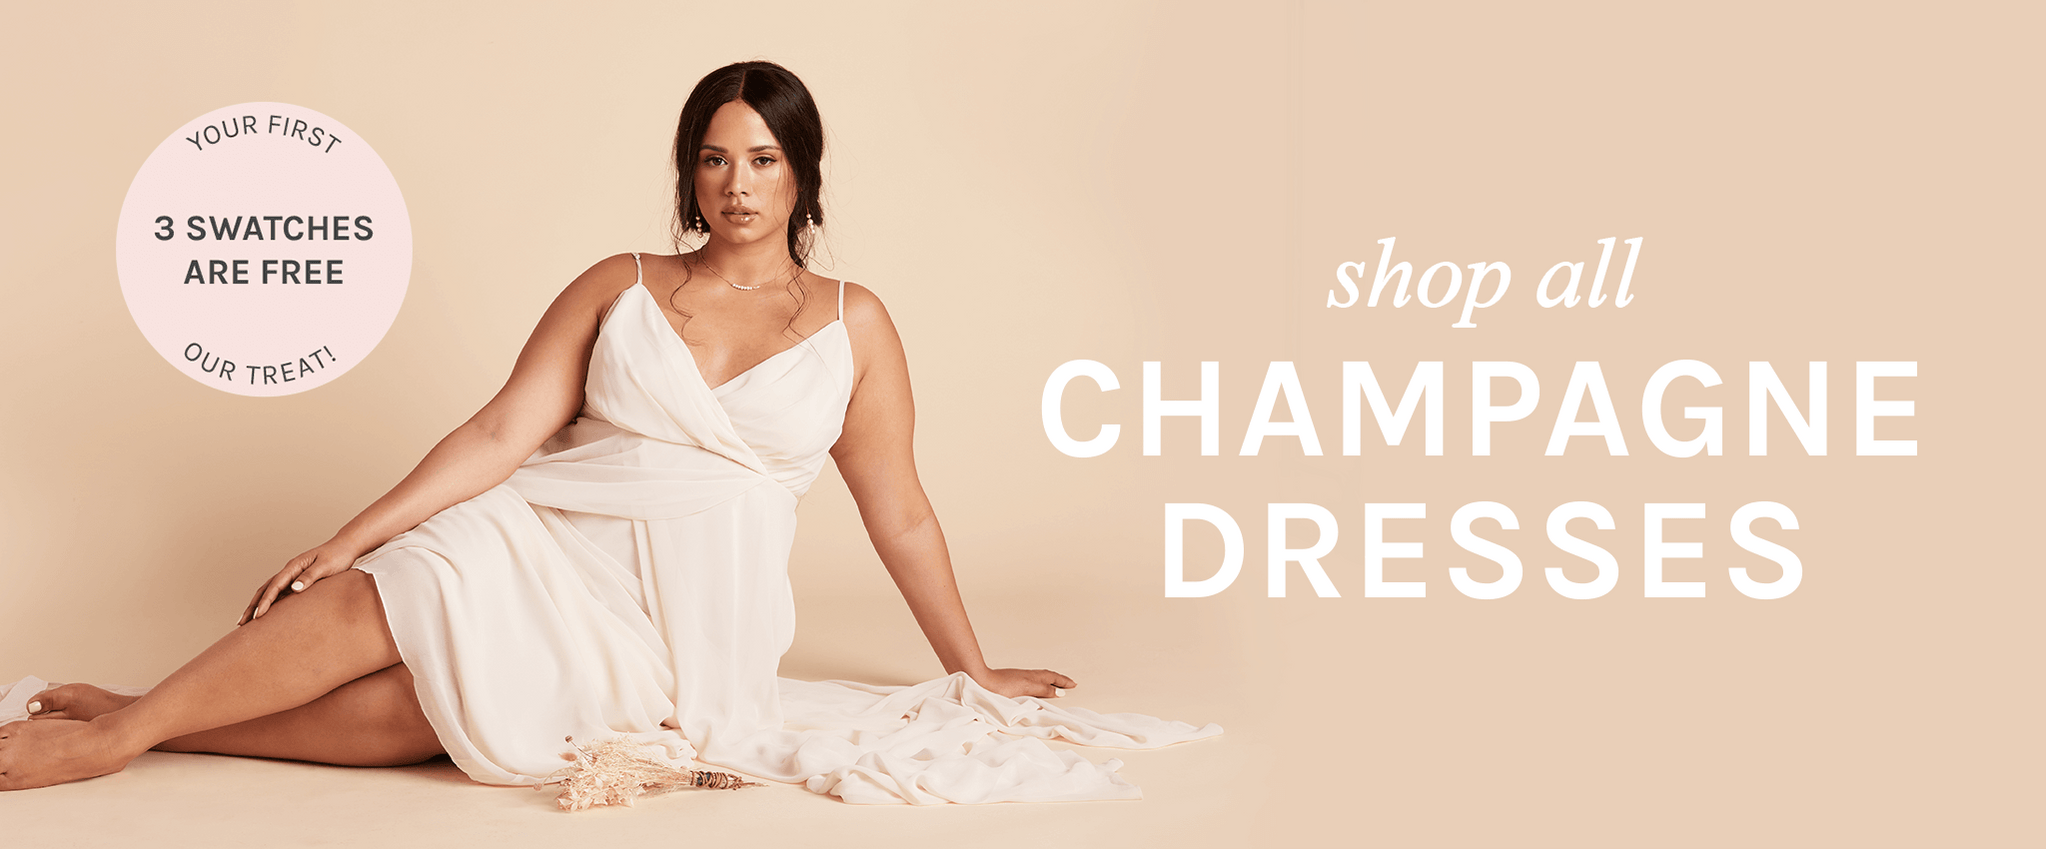 shop all Champagne dresses | your first 3 swatches are free, our treat  Birdy Grey